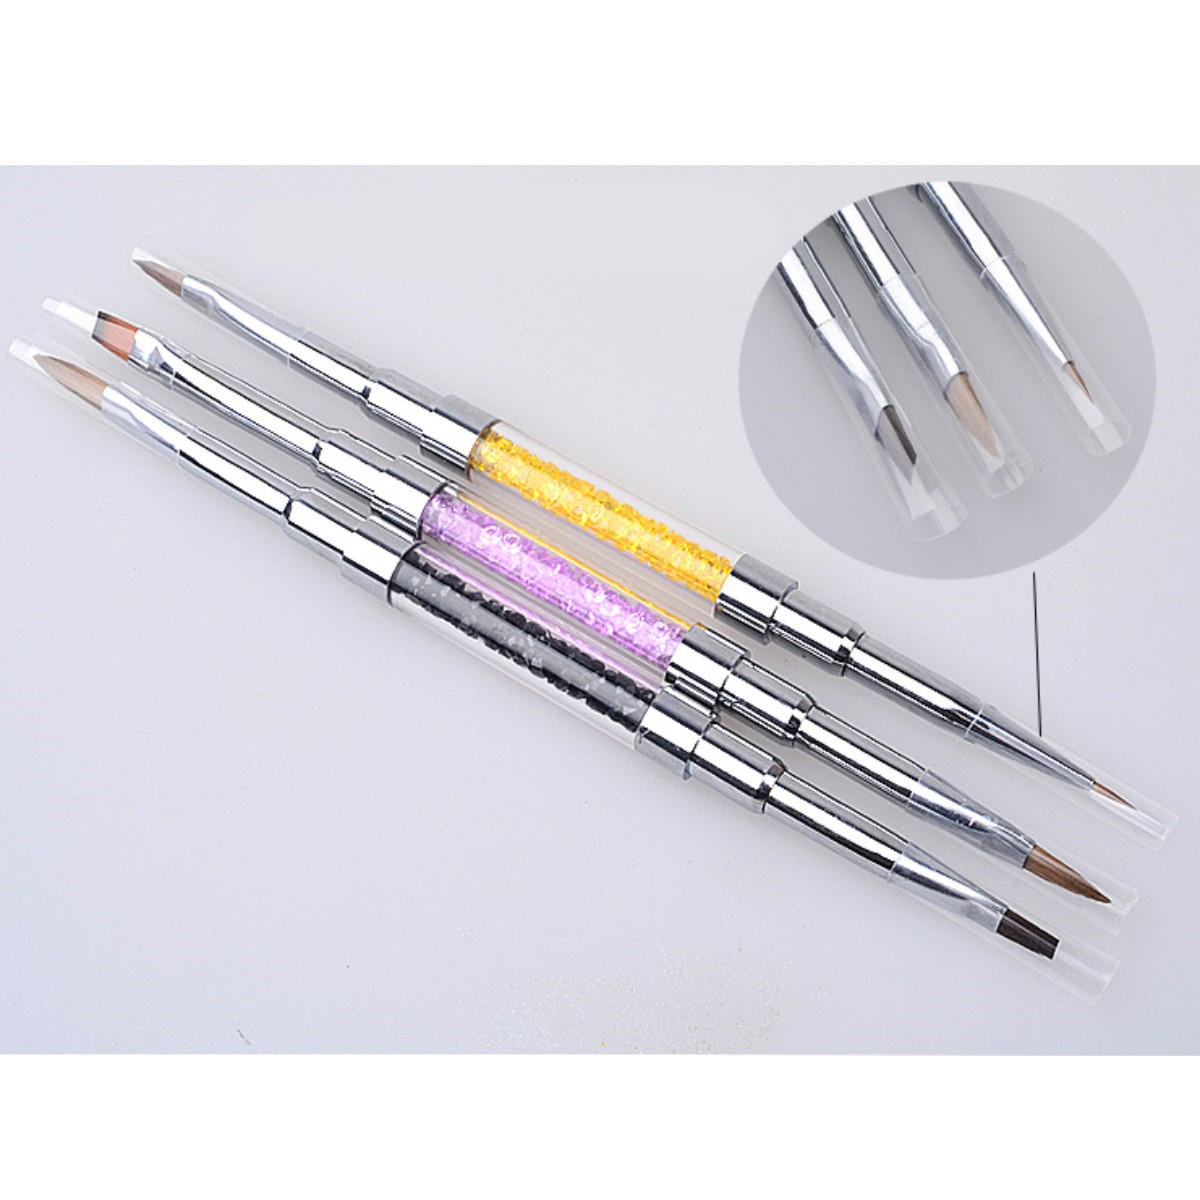 Dual-ended Painting Liner Nail Art Brush Pen UV Gel Drawing Brush with Cap Acrylic Rhinestone Handle Manicure Tools